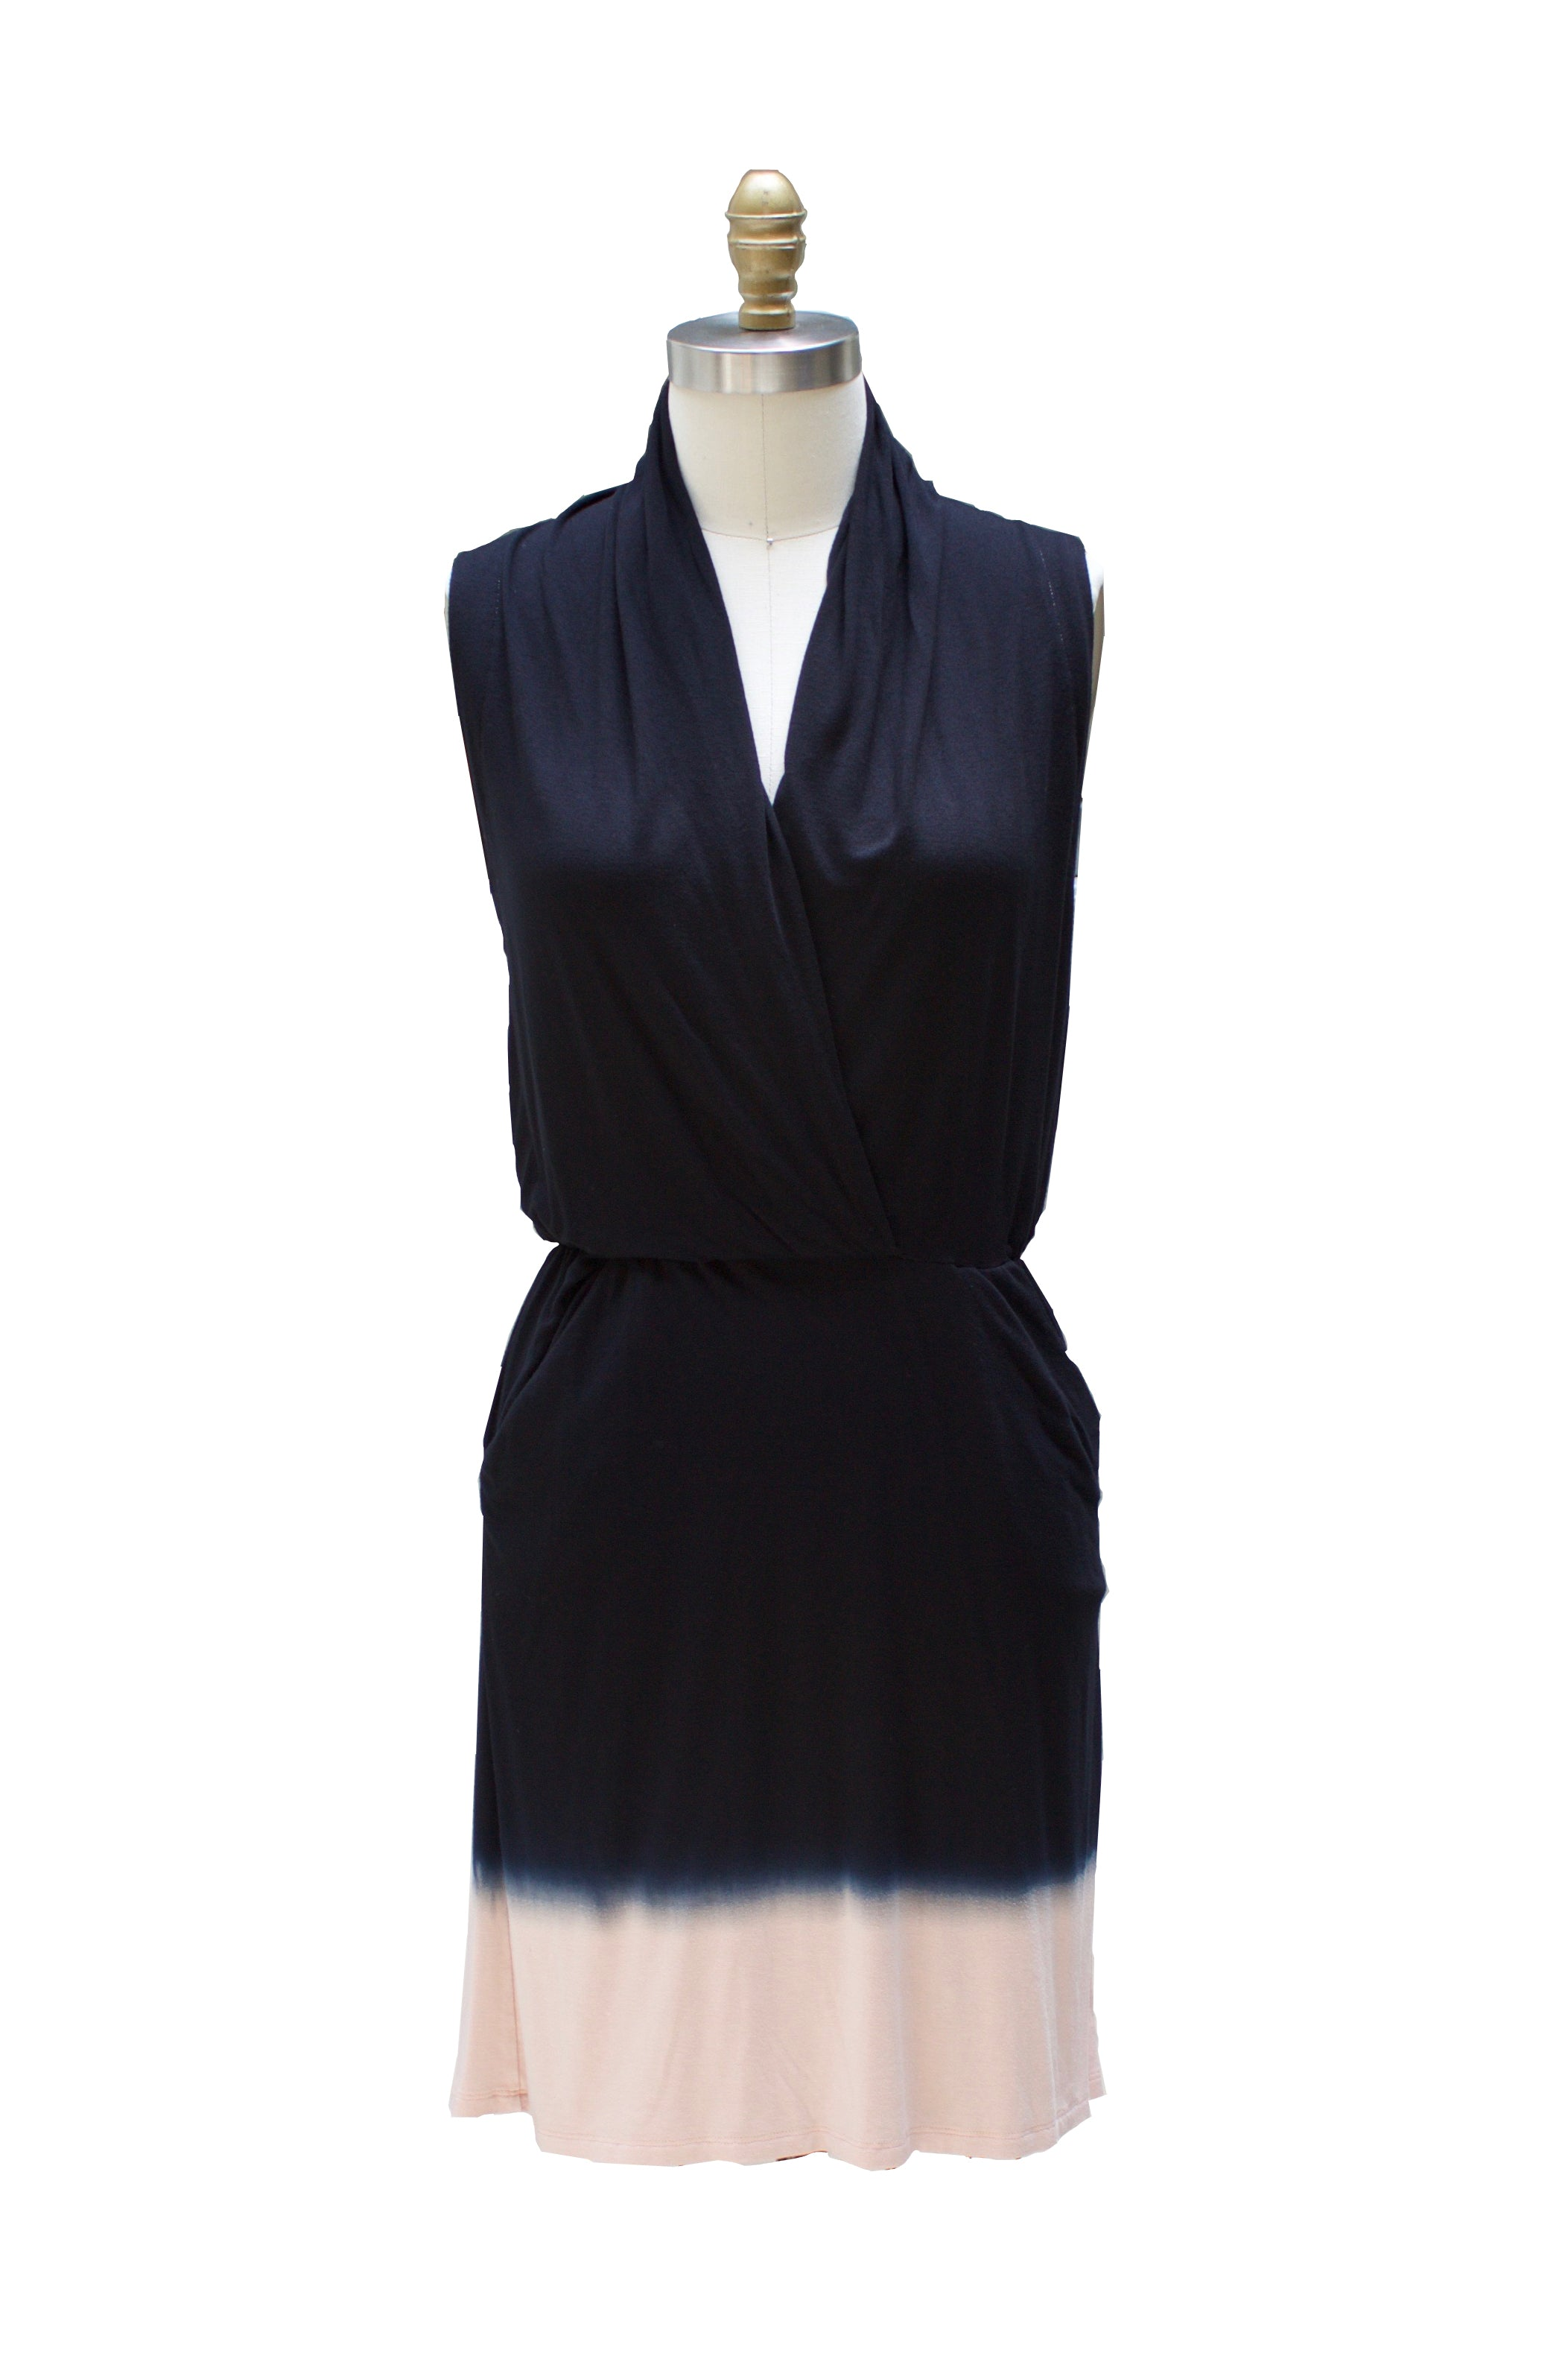 Dip Dye Capsule - Lorie Dress - SALE